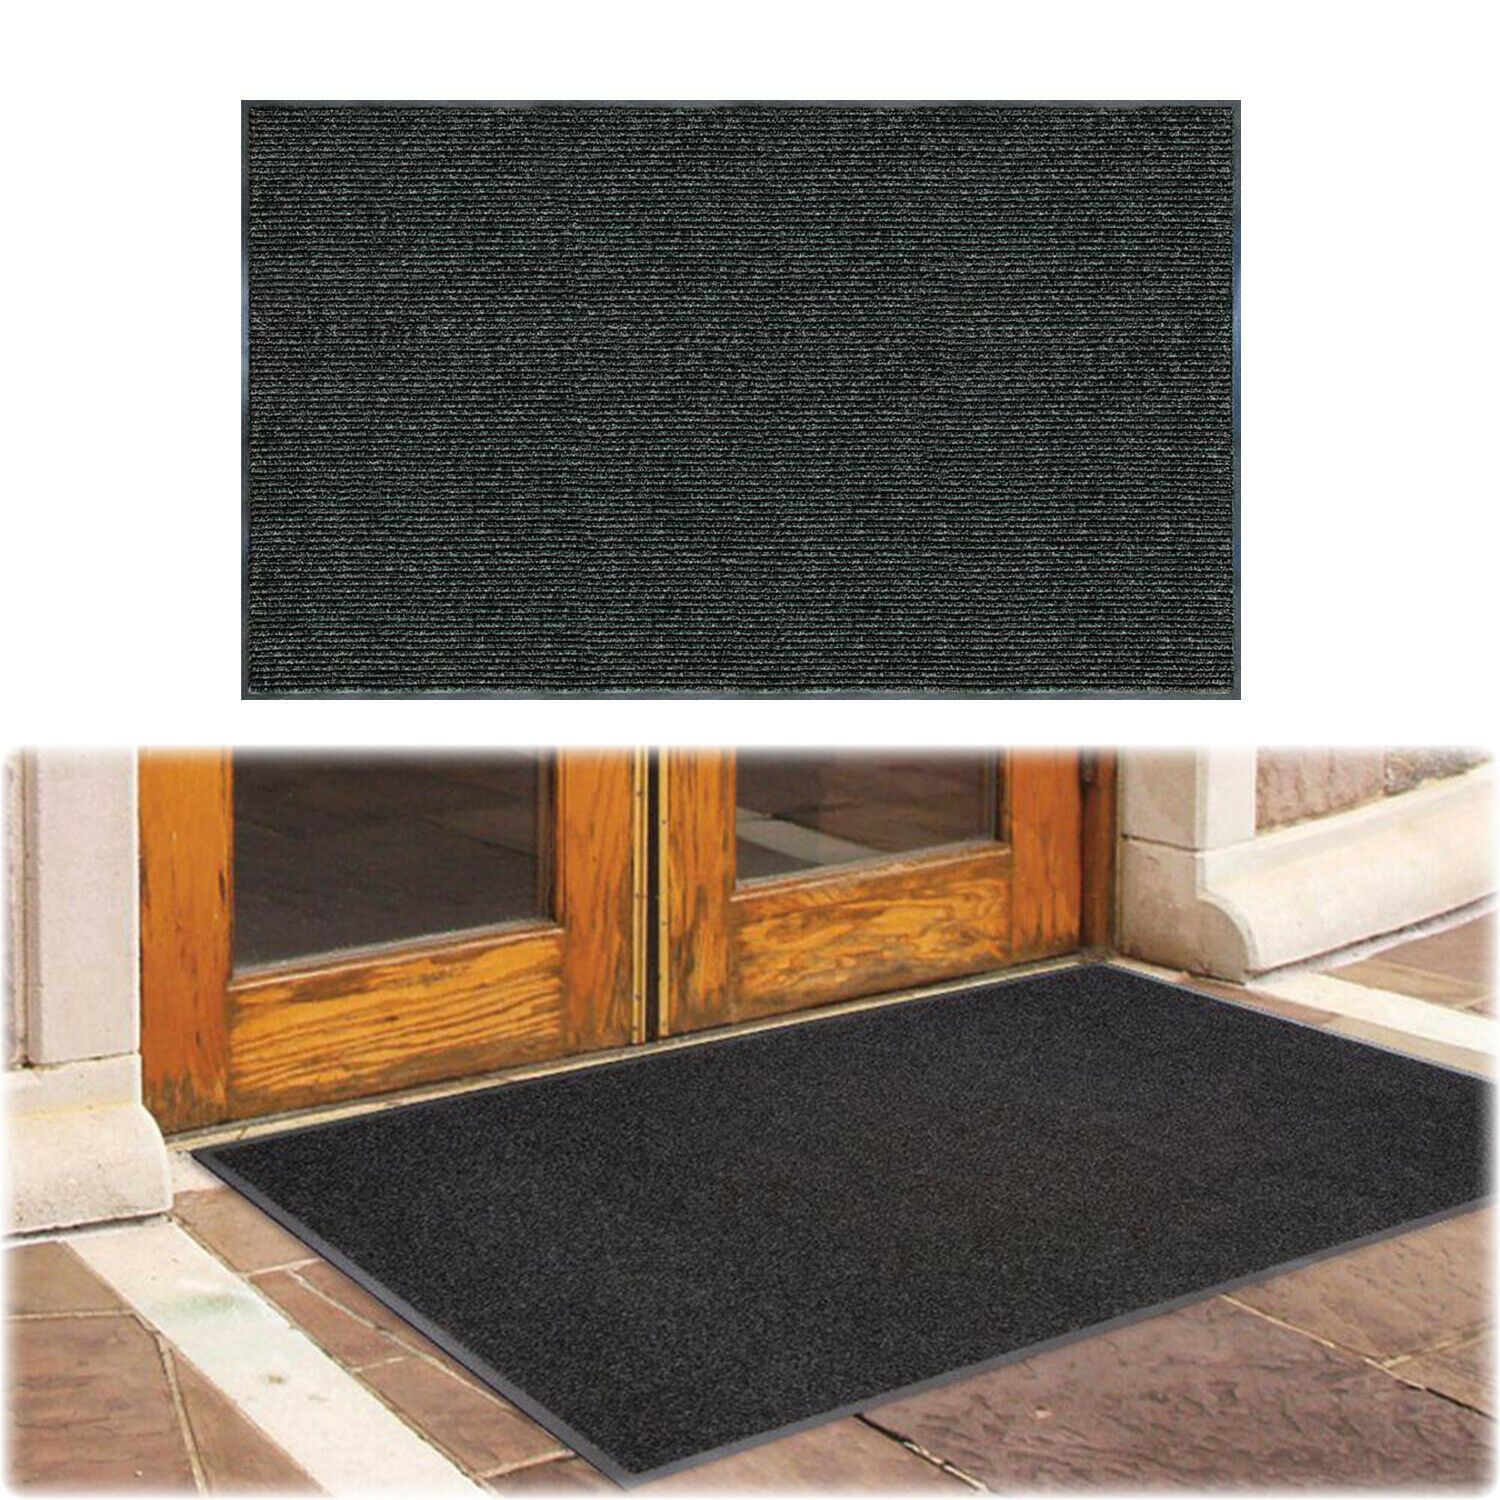 Details About Entrance Floor Door Mat